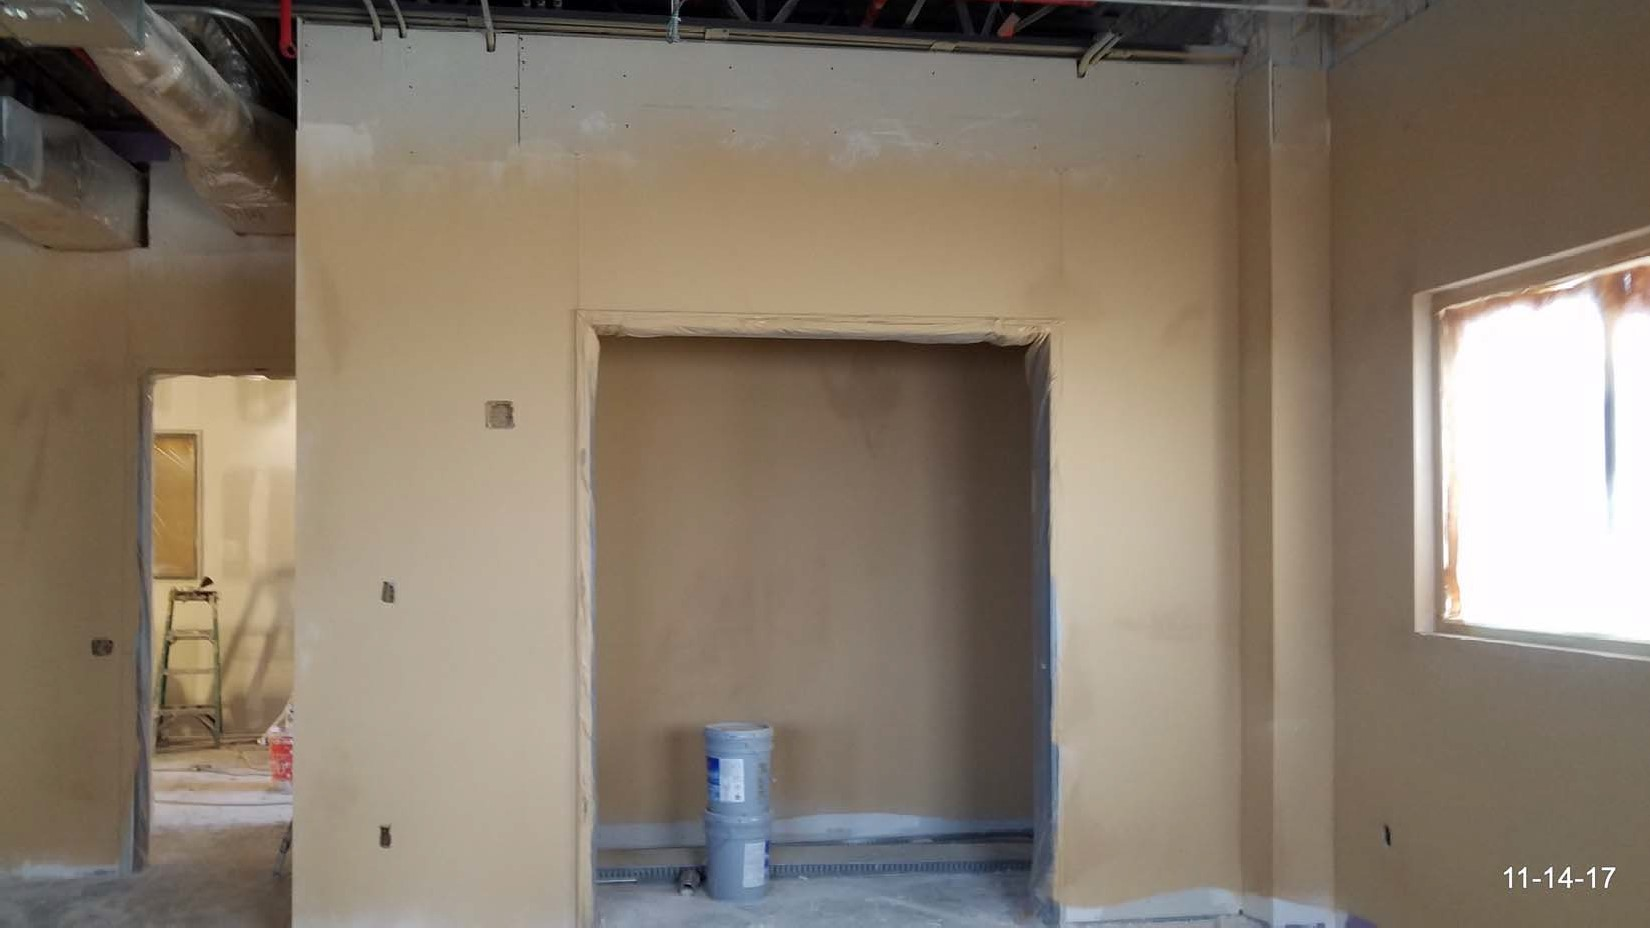 Fireproofing applied to the conference room walls.